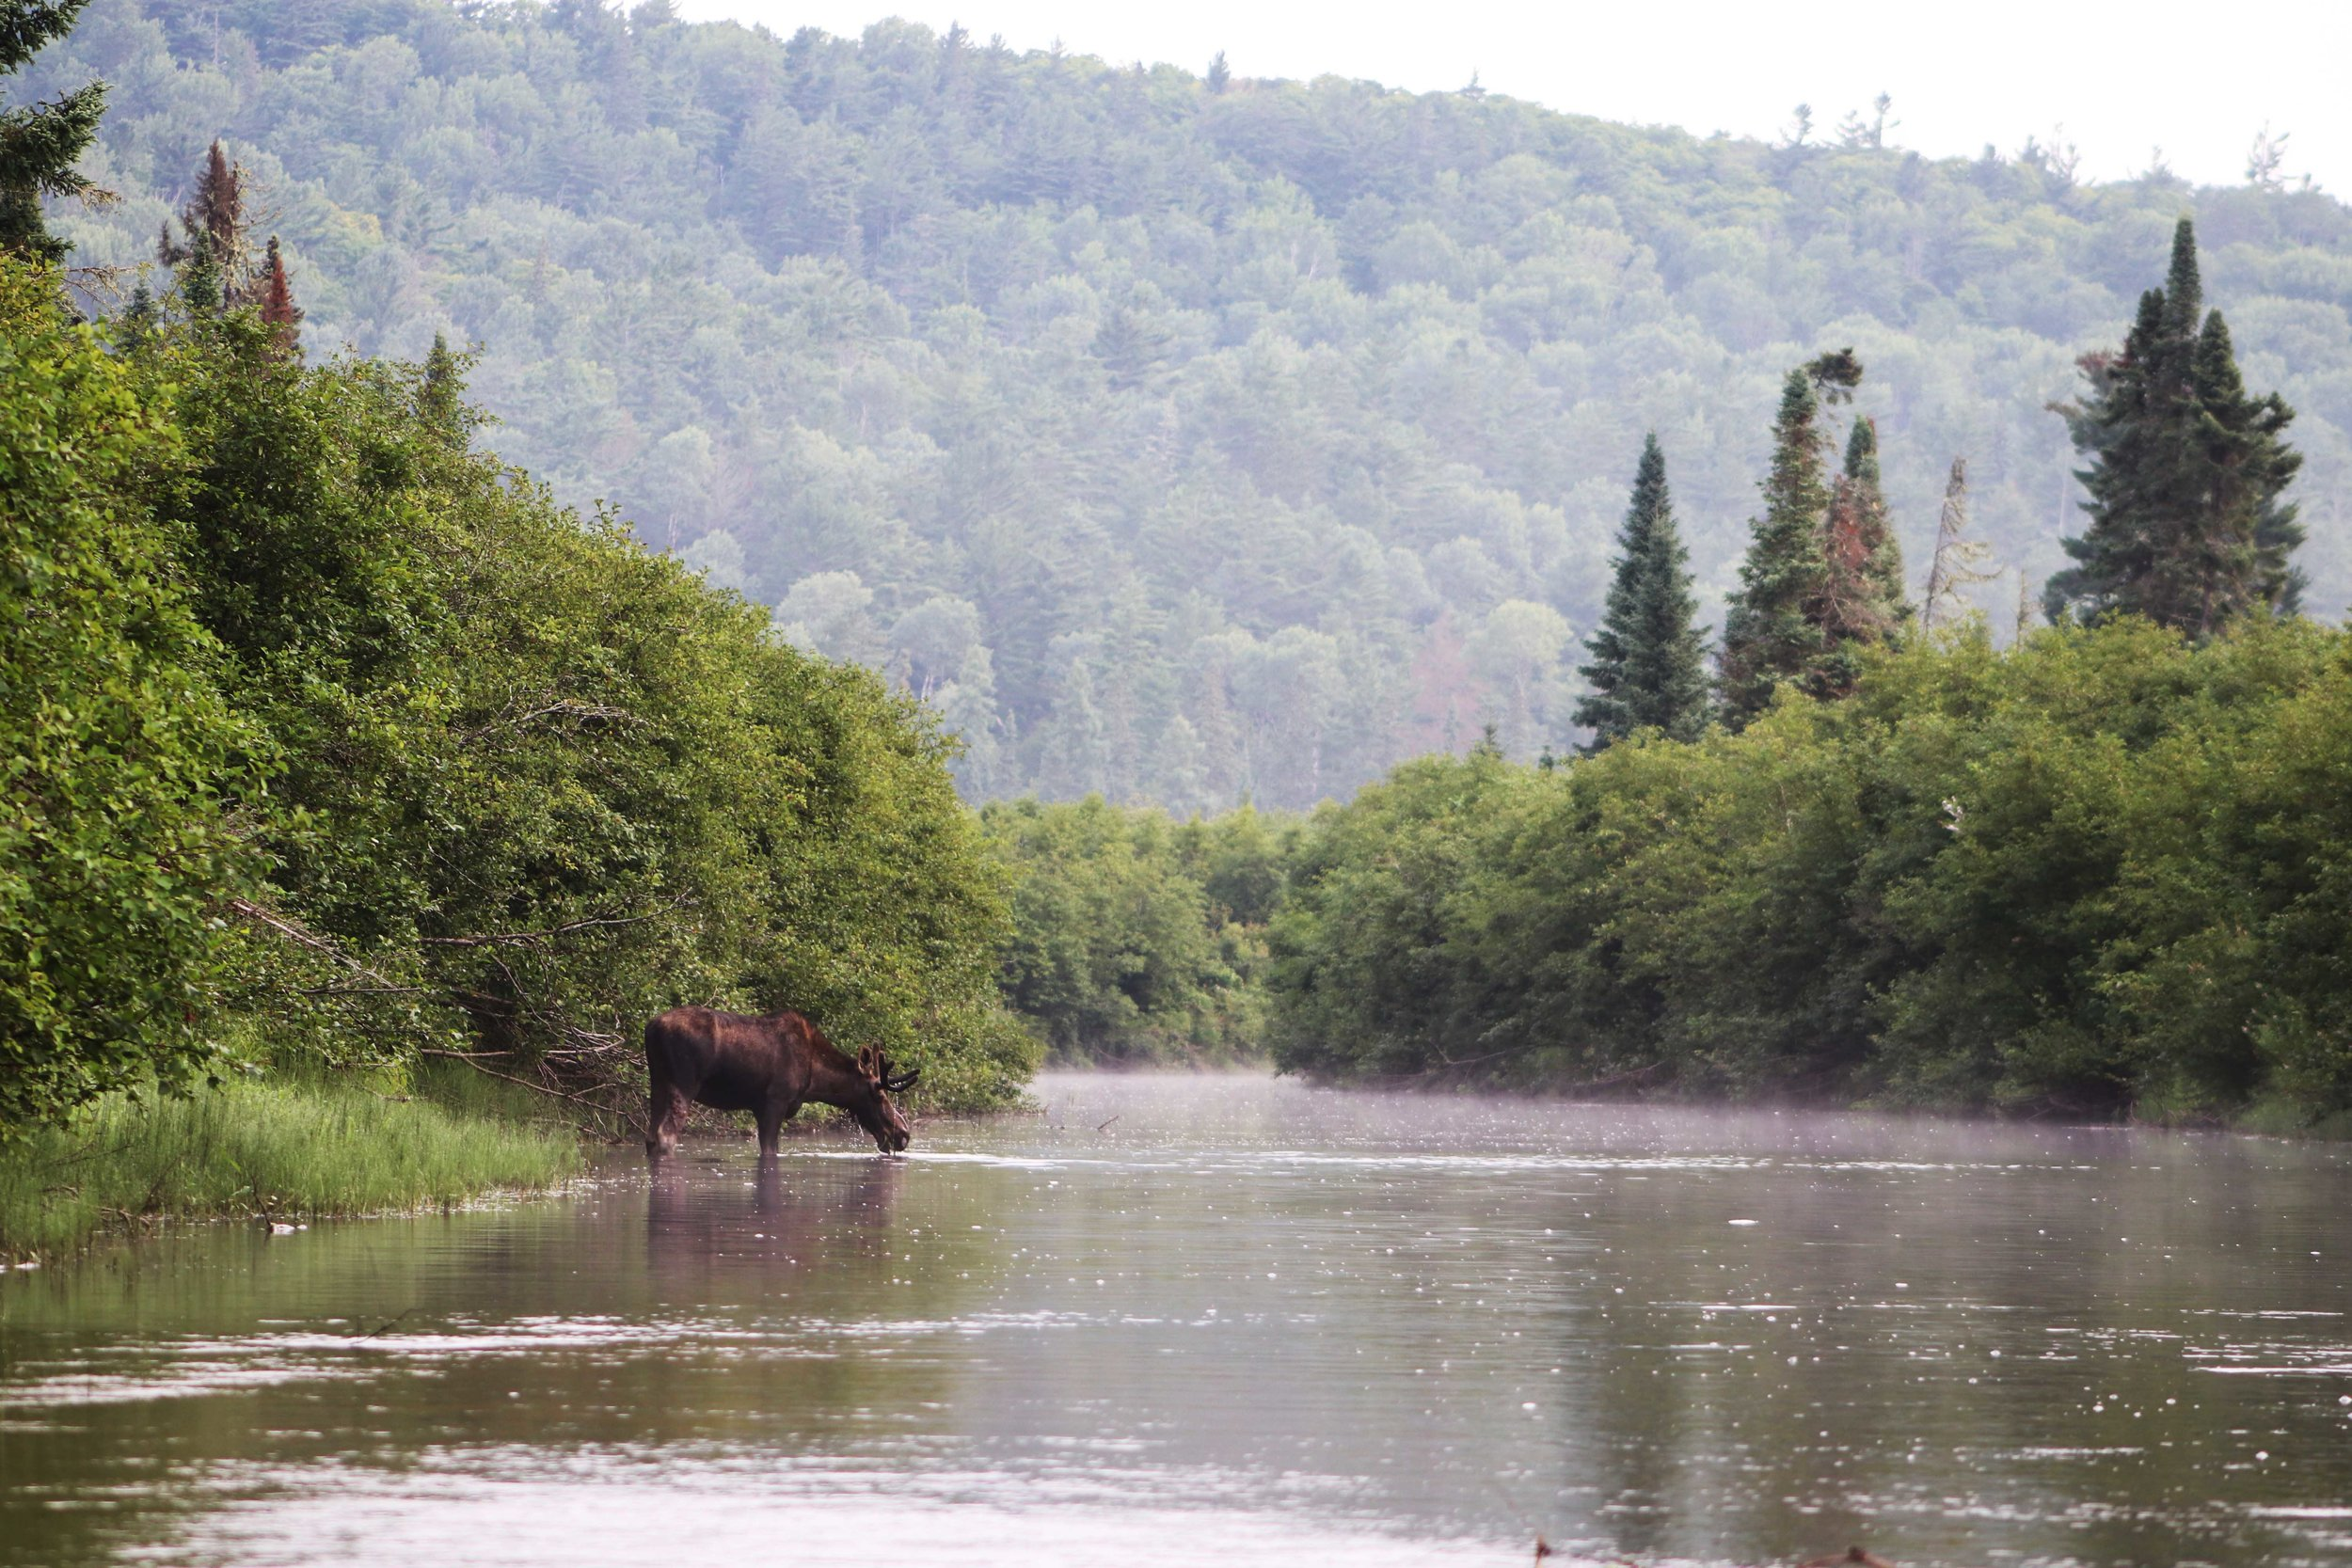 """Our first of 5 moose sightings along the Nipissing River. Noah mentioned """"There is a real moosy vibe this morning"""""""